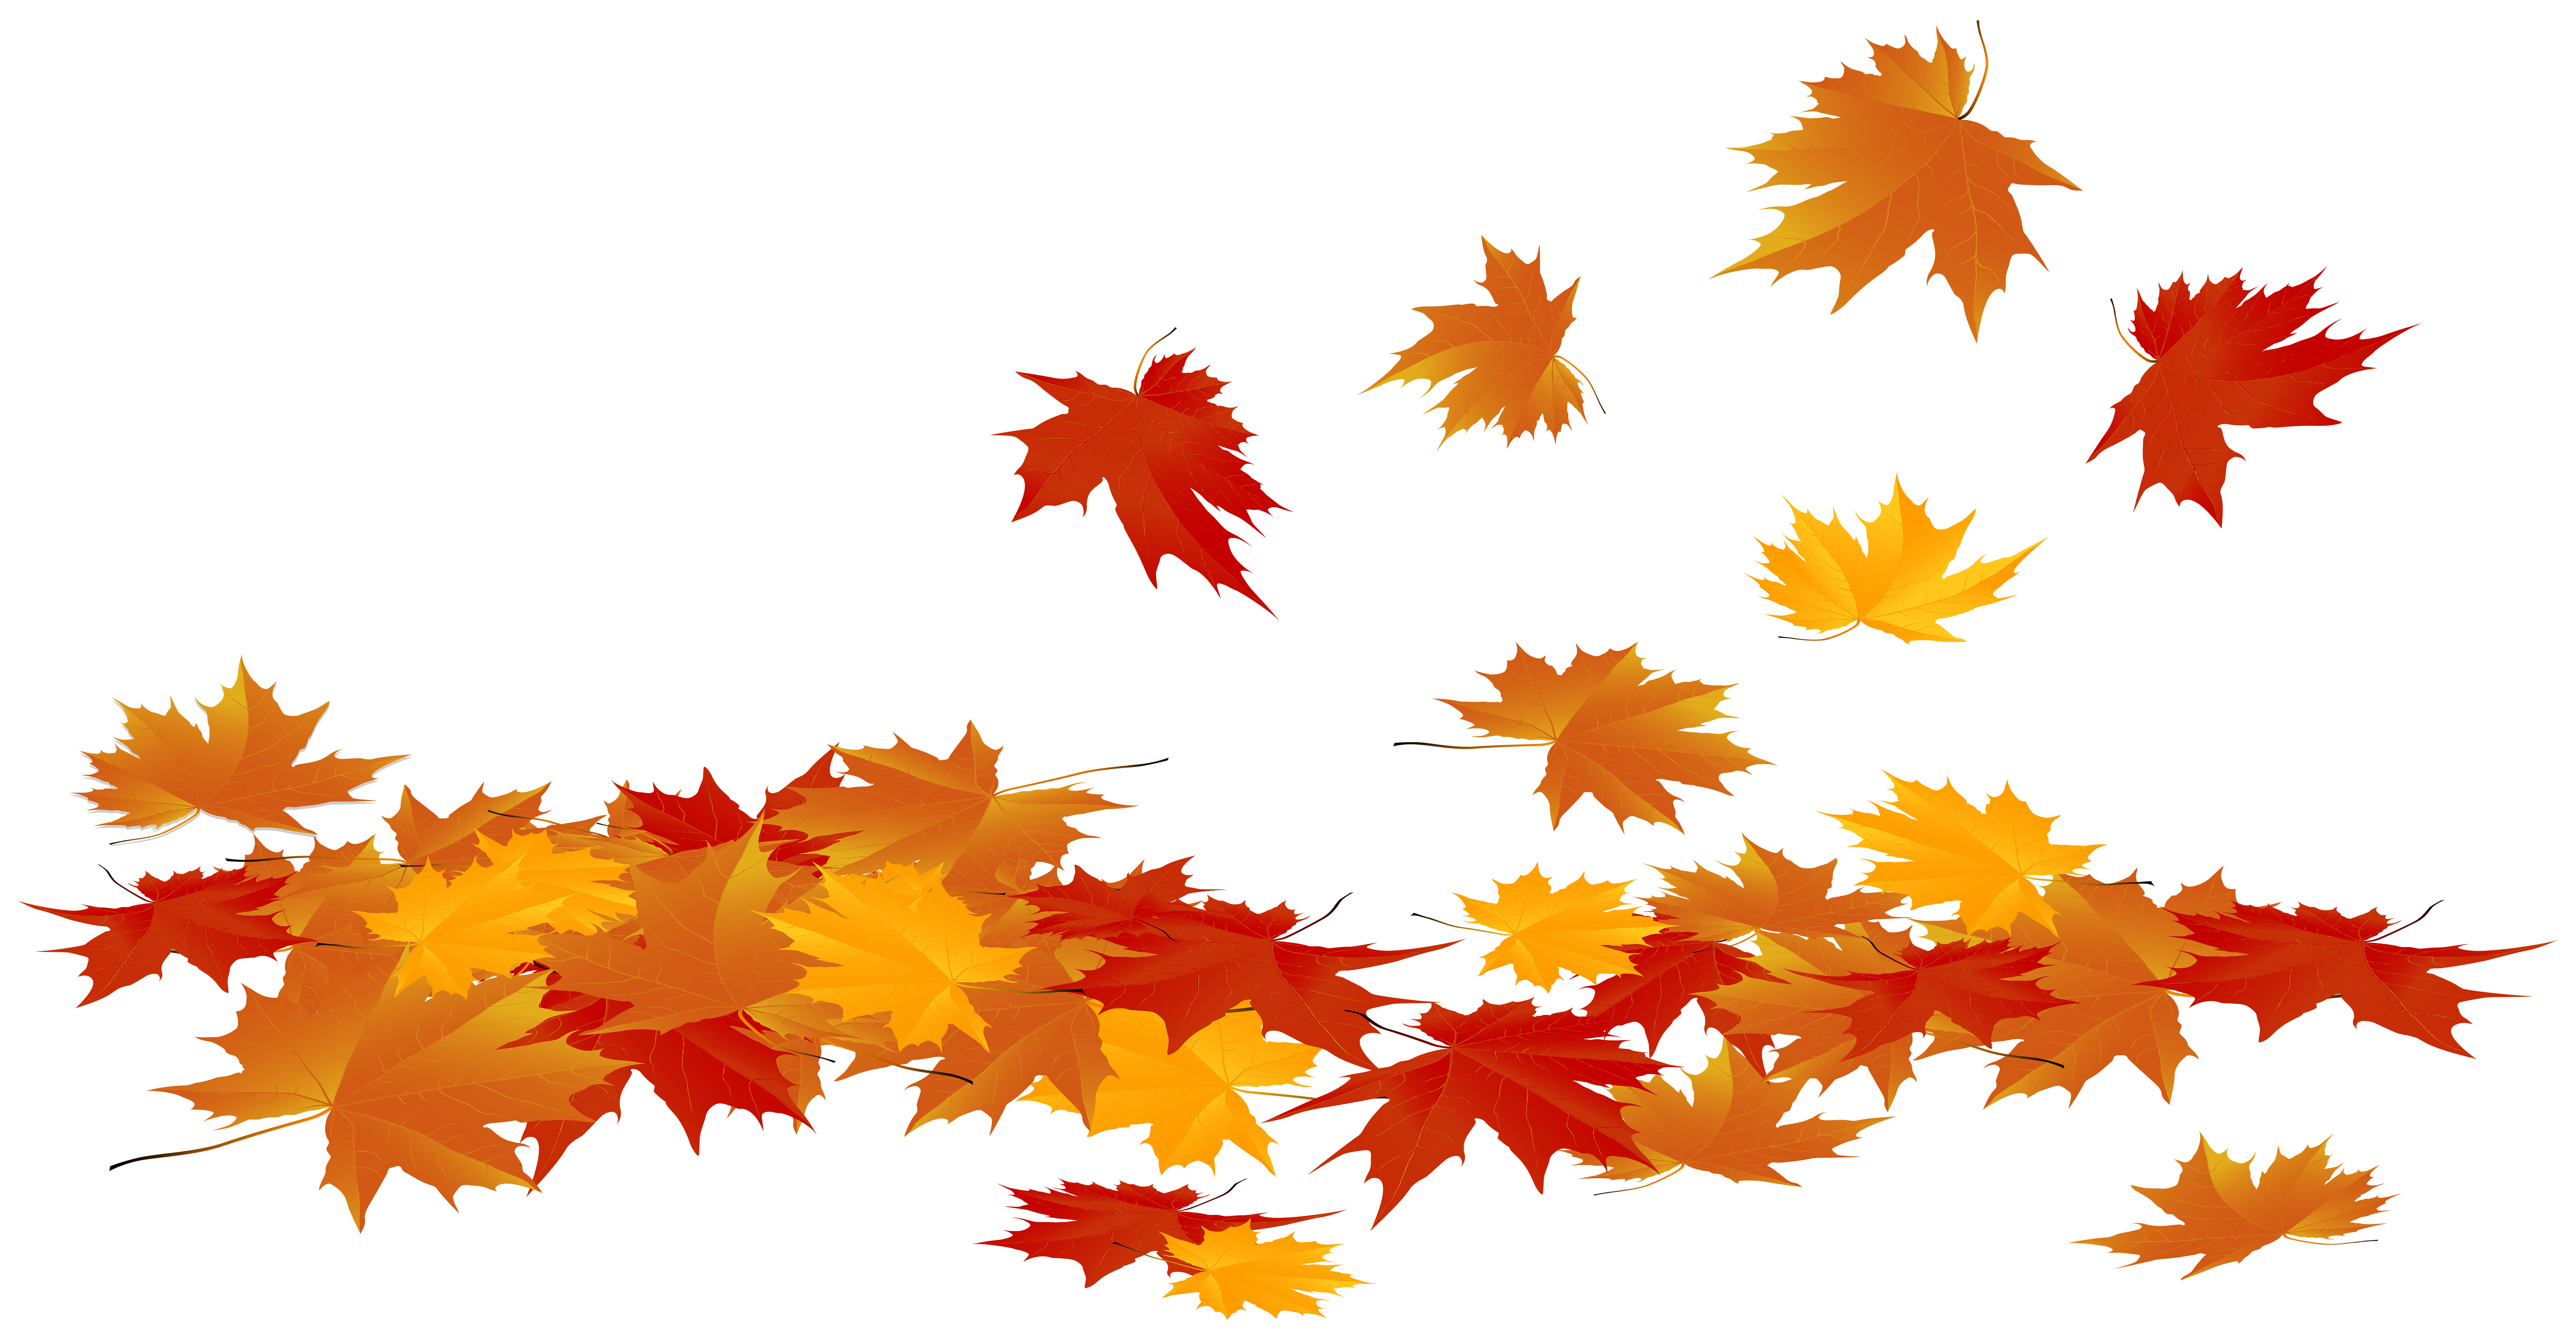 Fall Leaves Png & Free Fall Leaves.png Transparent Images ...